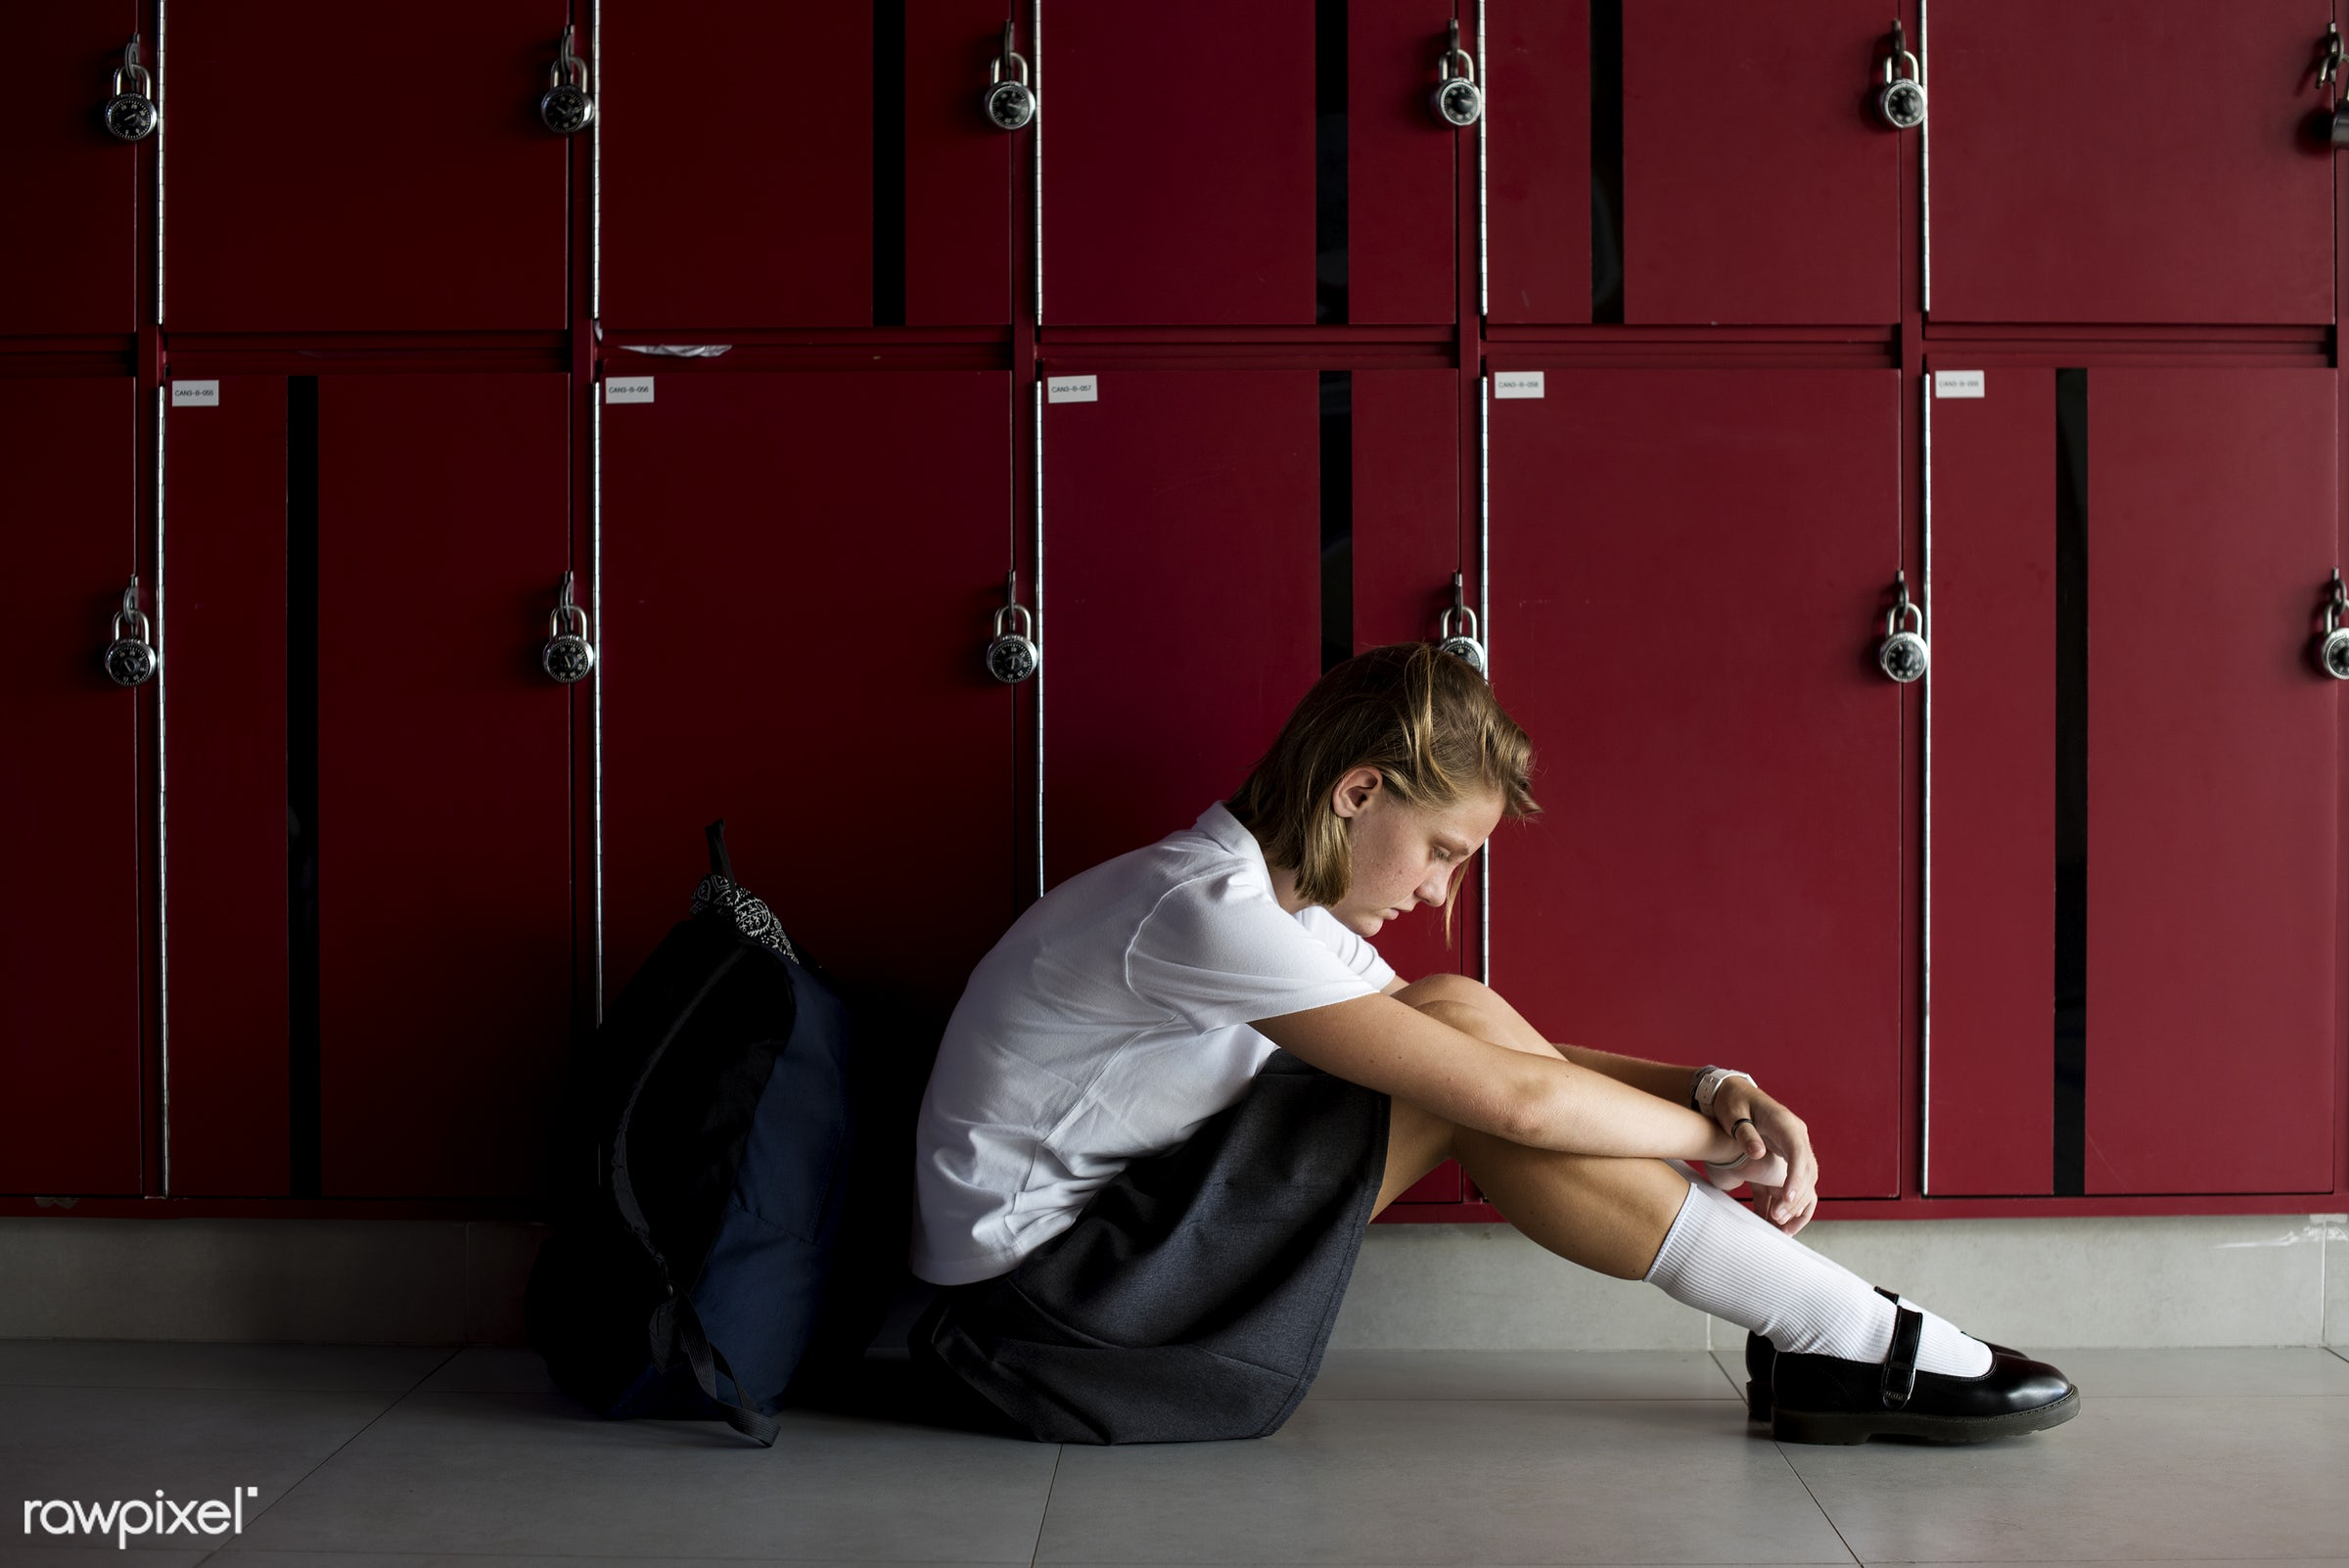 abuse, abused, adolescent, adult, back to school, bored, boredom, bullied, bully, bullying, campus, depressed,...